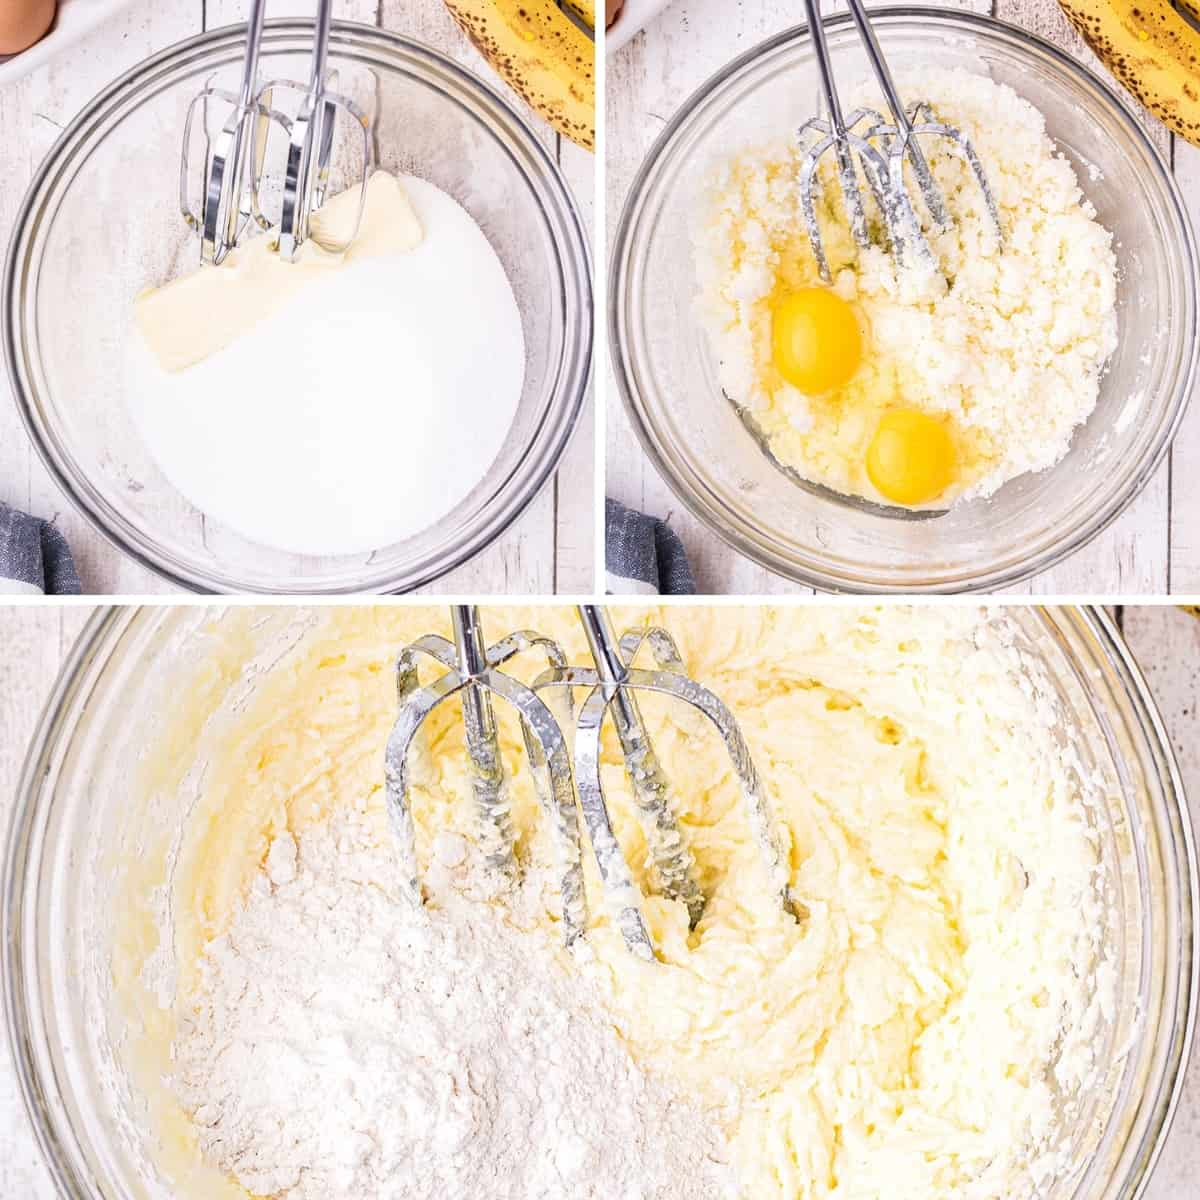 Photo collage demonstrating creaming butter and sugar, adding eggs, and adding flour.